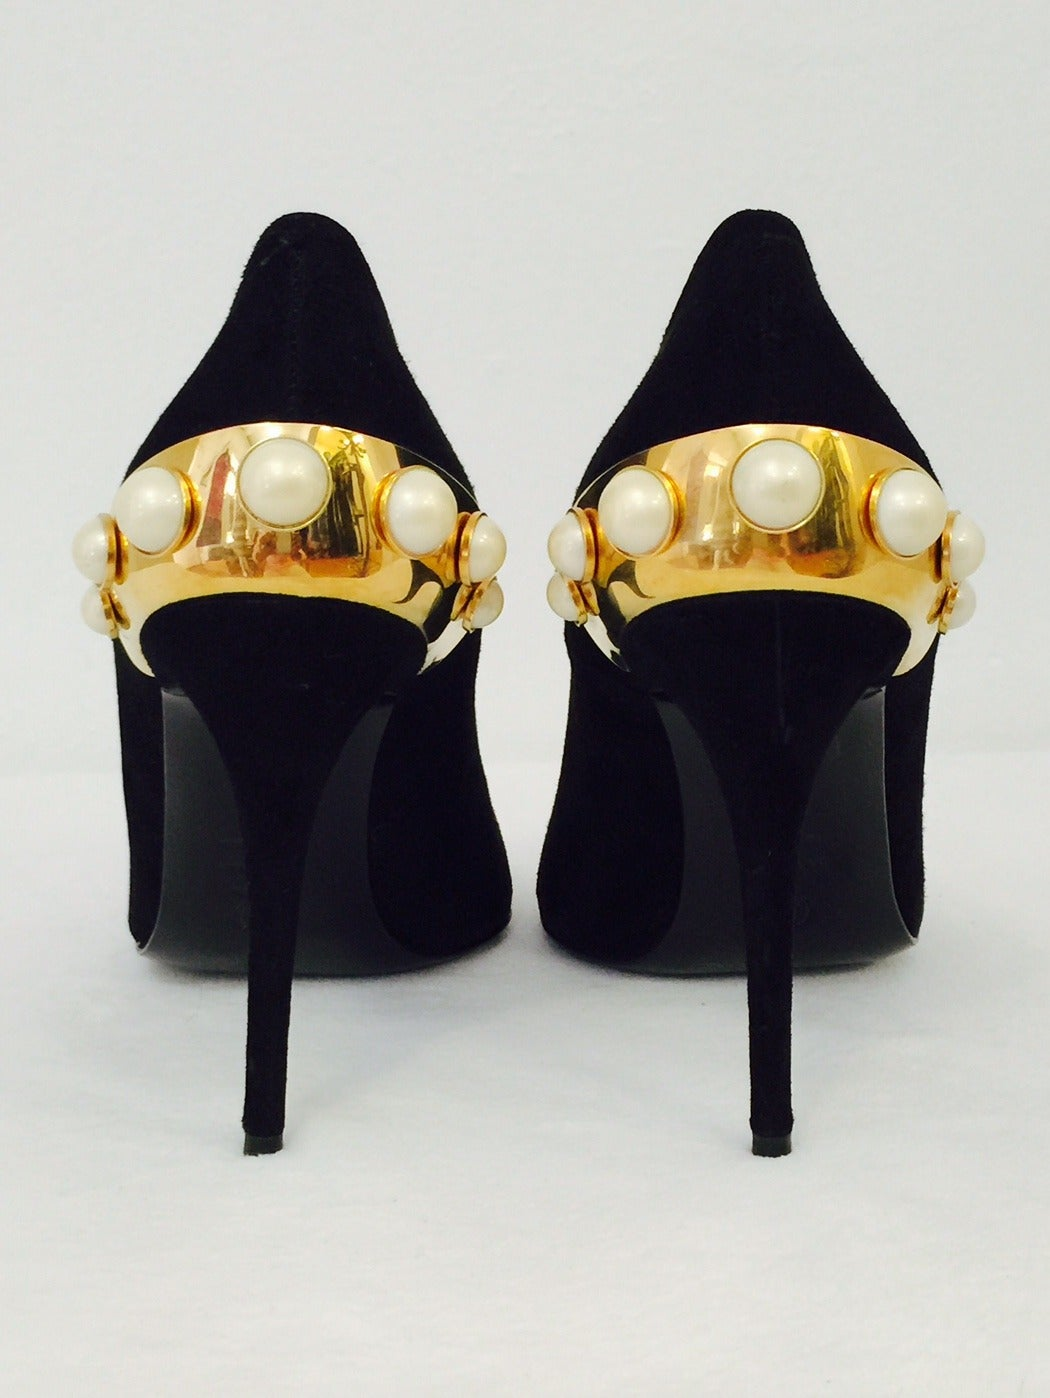 Awe-Inspiring Alexander McQueen Black Suede Evening Pumps with Pearls For Sale 1